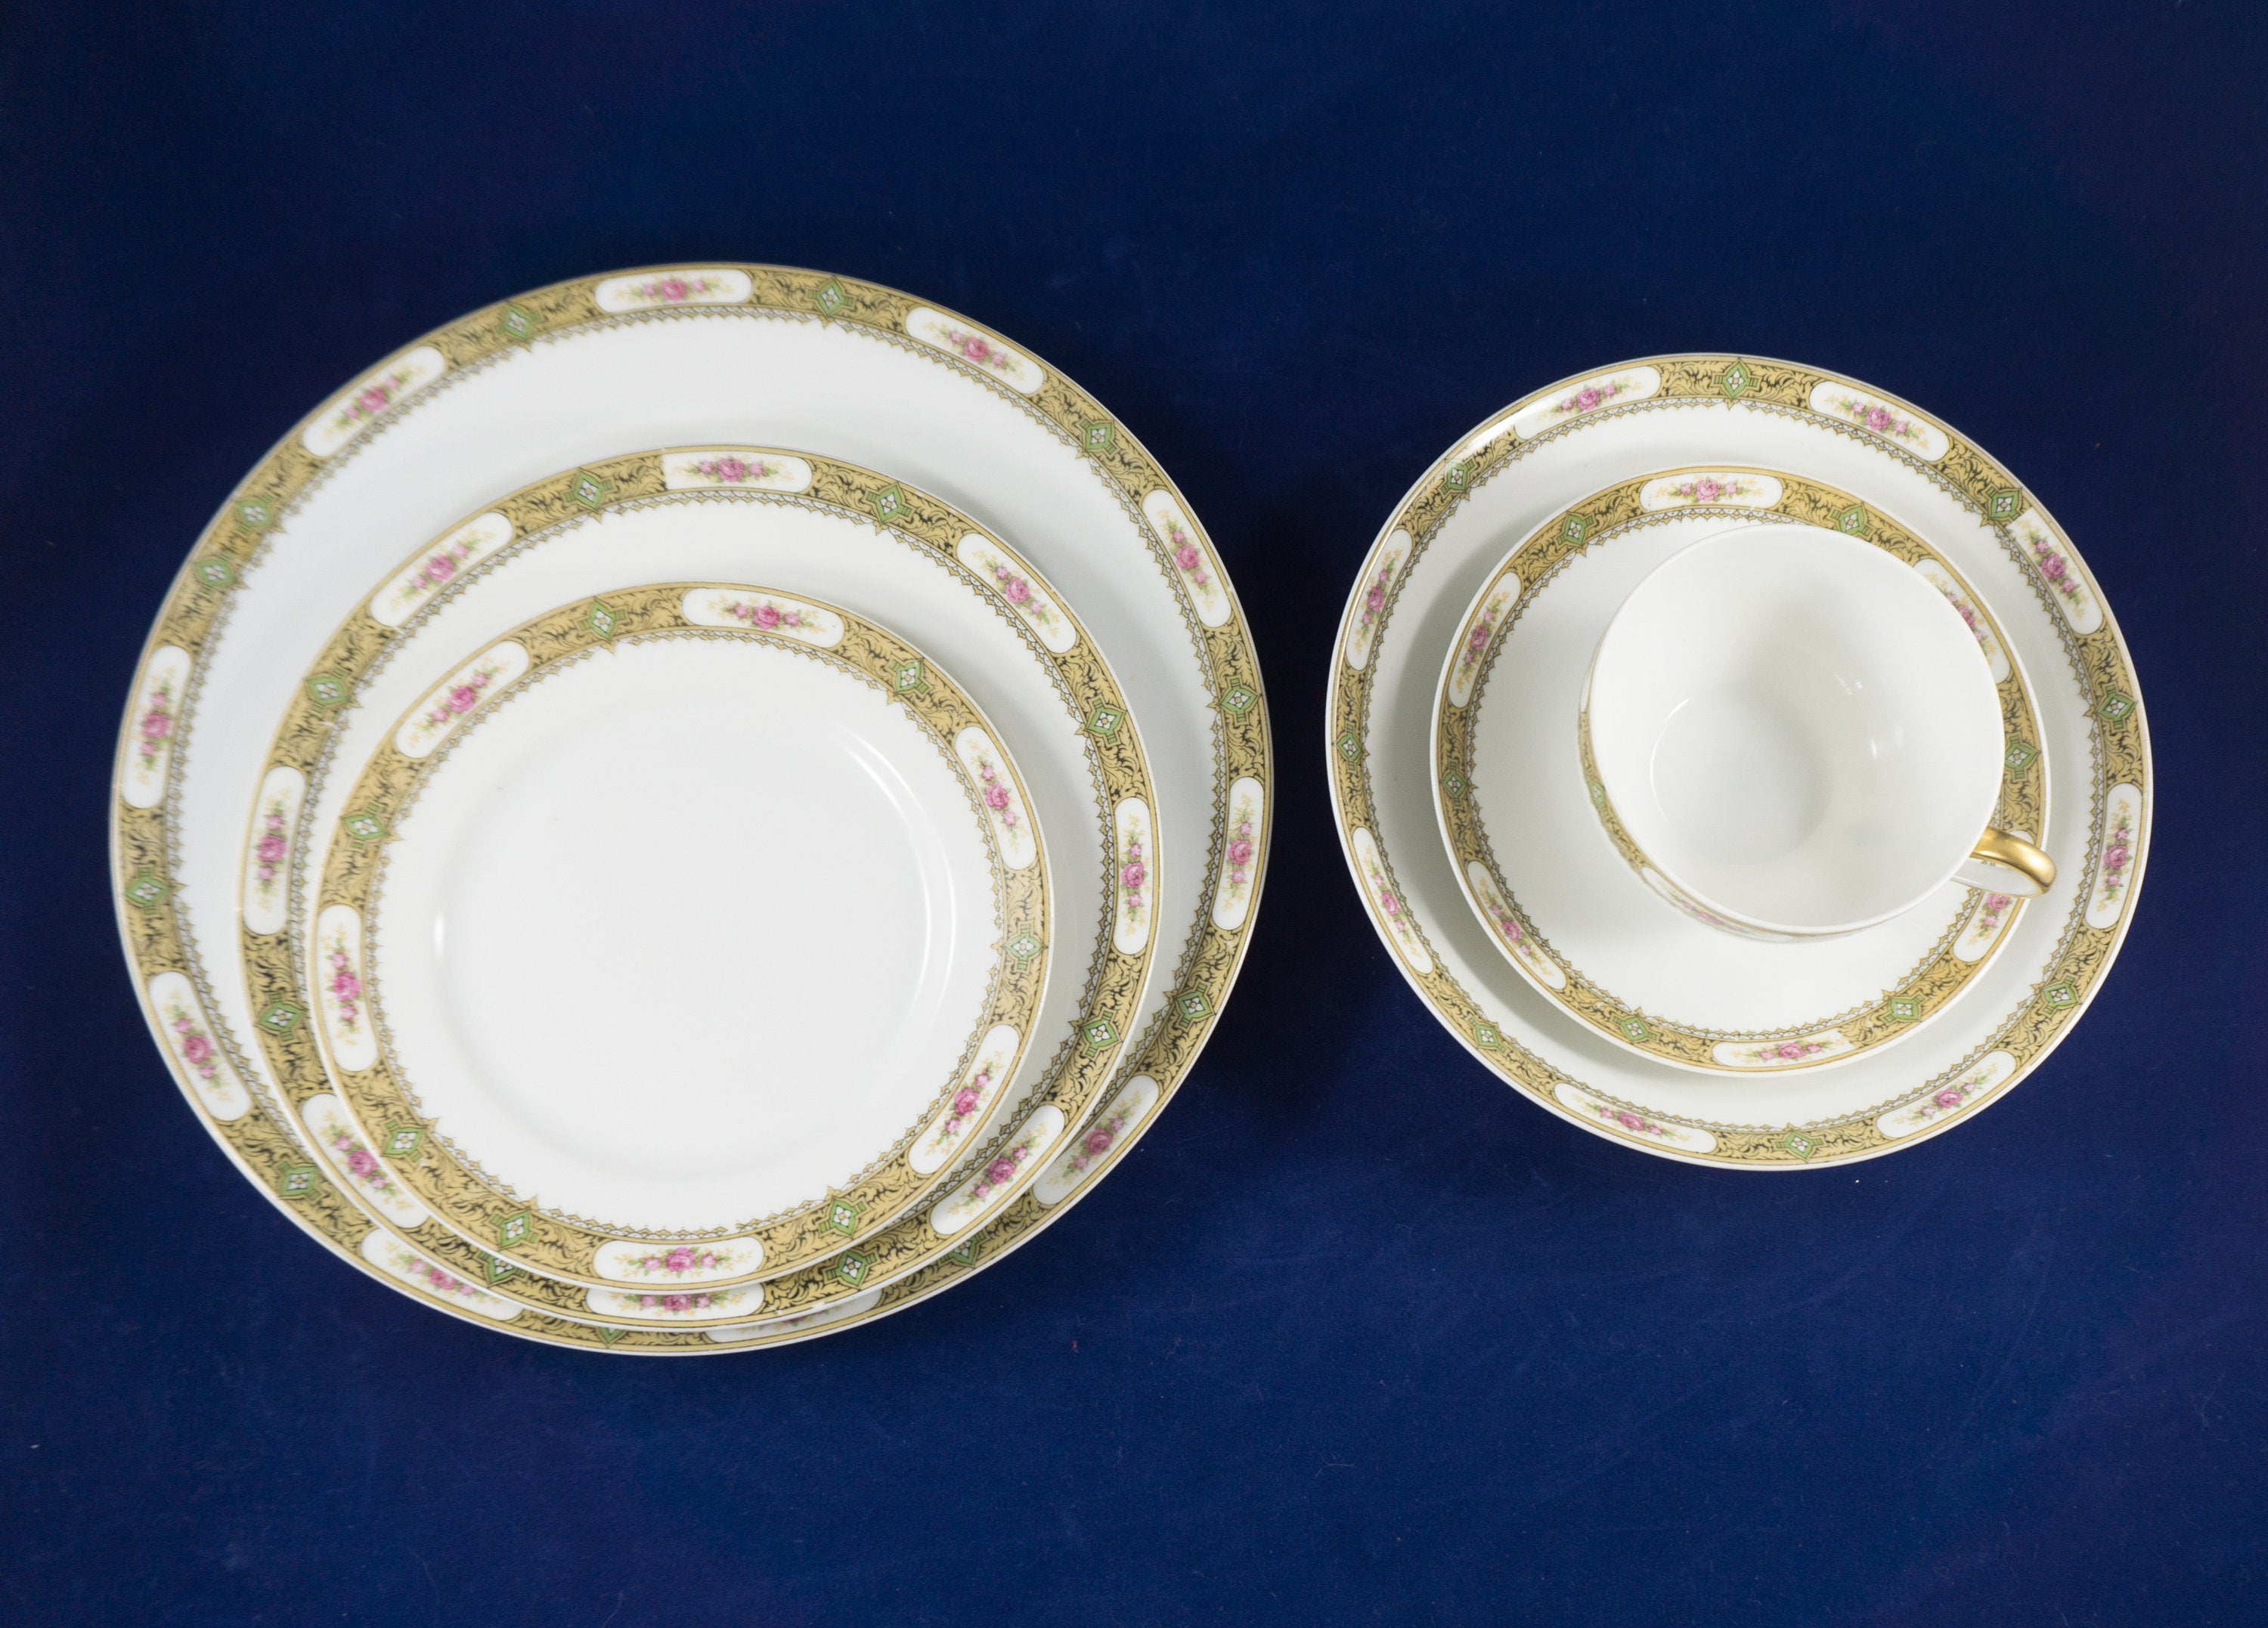 6 Piece Place Setting Vintage Tressemanes and Vogt China from Limoges, France ca 1910